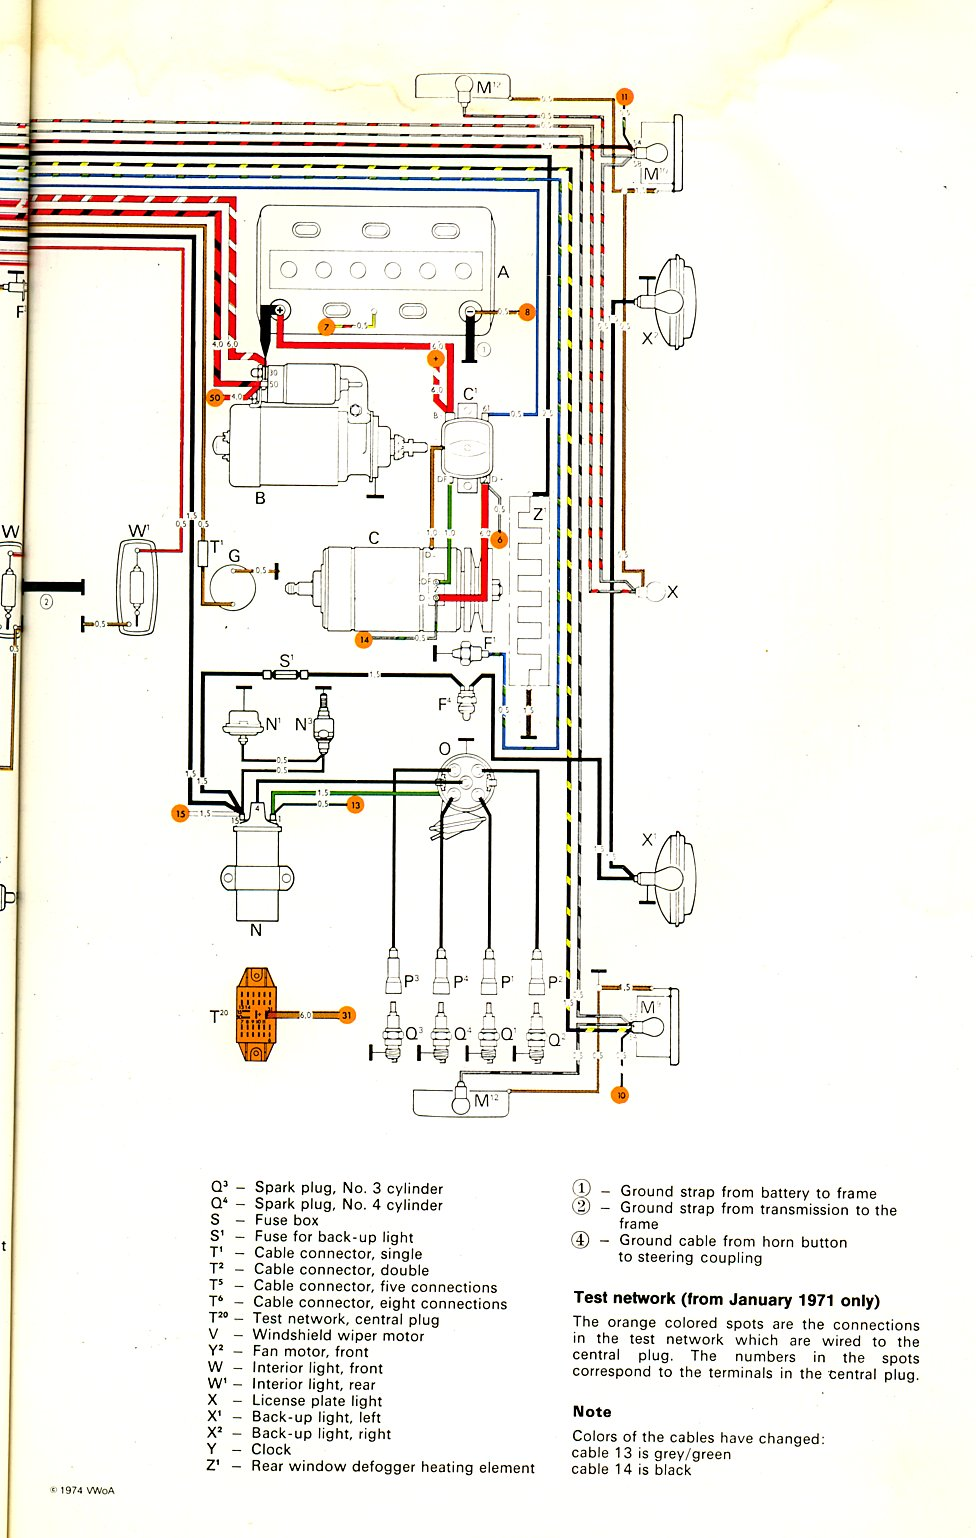 baybus_71b thesamba com type 2 wiring diagrams 1968 corvette wiring diagram at cos-gaming.co